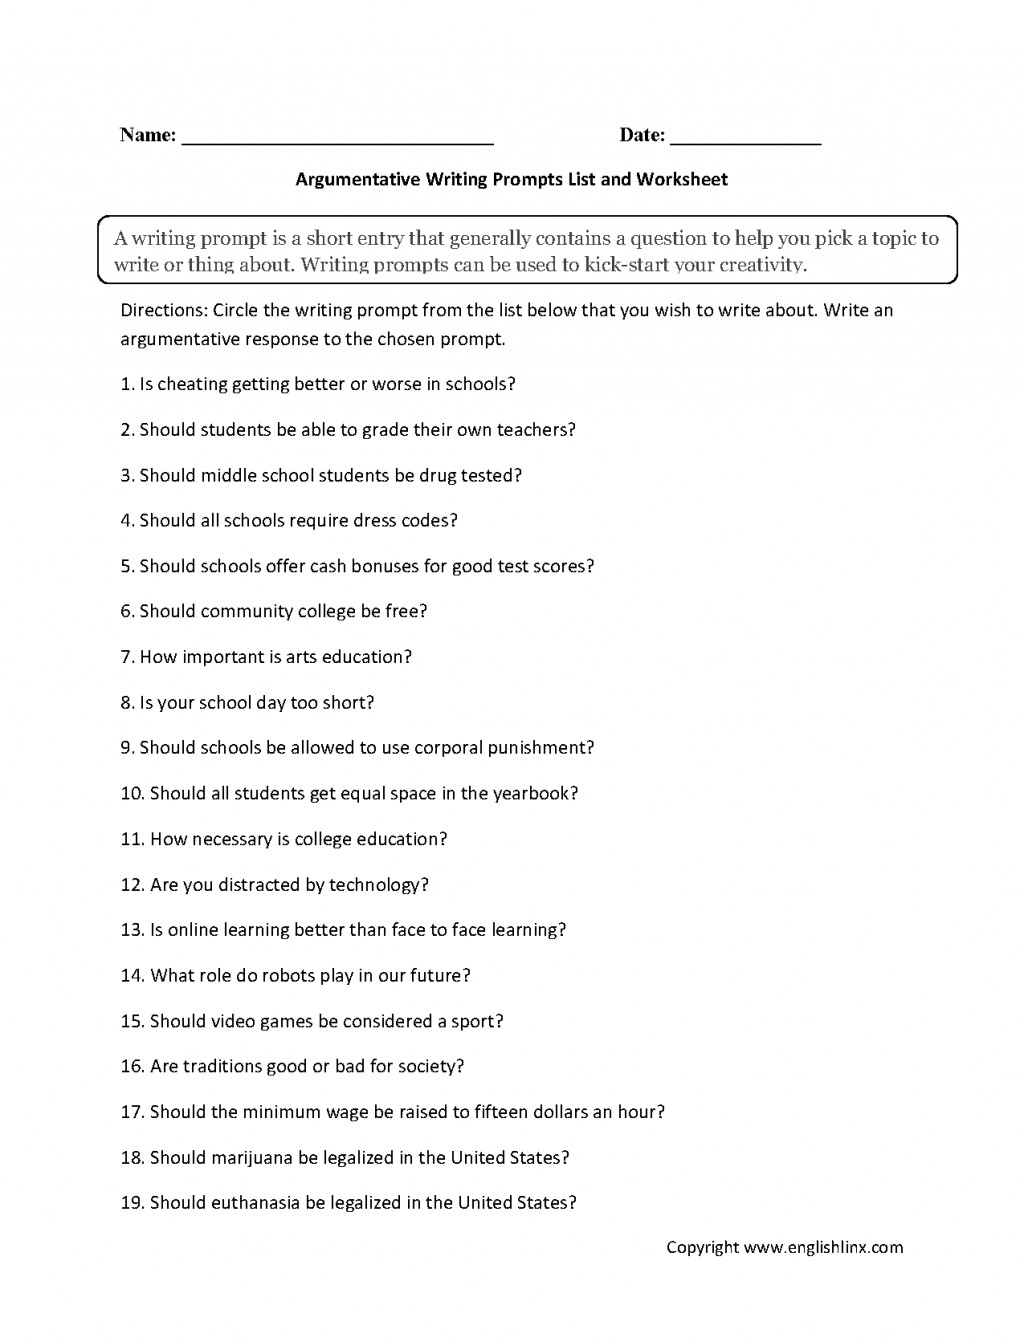 004 Essay Example Argumentative Writing Prompts List Worksheet Amazing Topic Topics For High School Pdf About Classical Music Middle Large